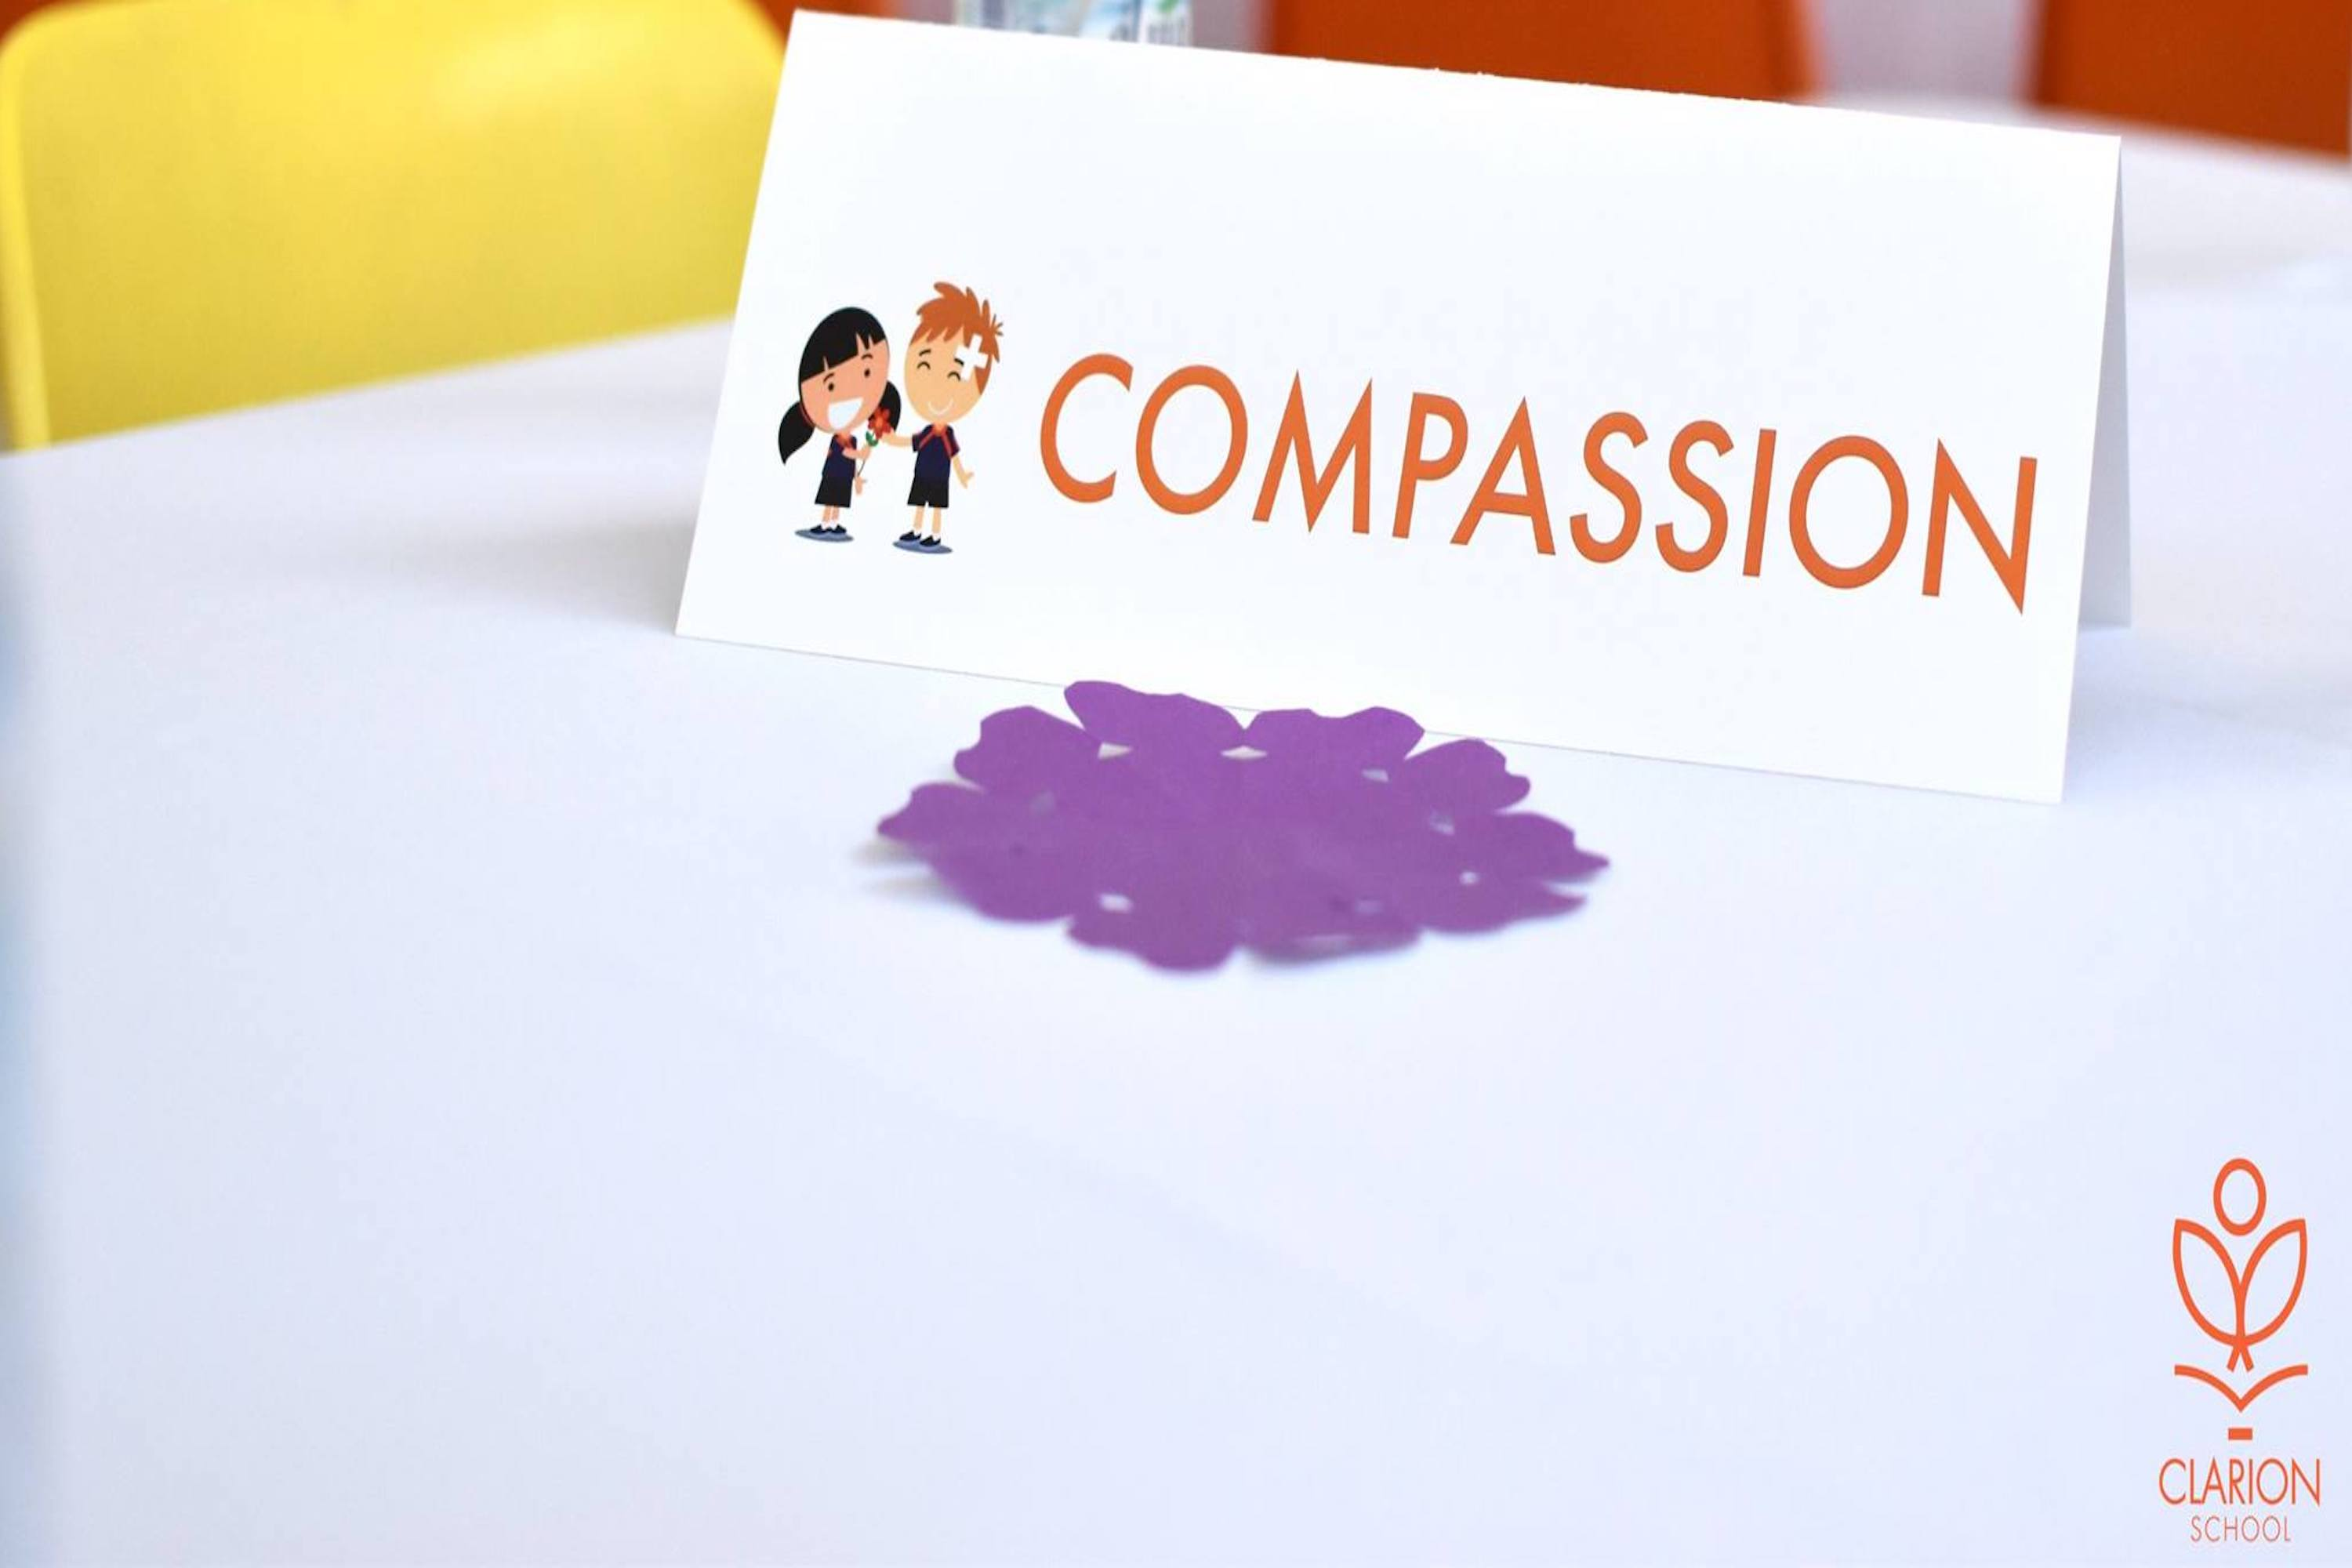 Walk In Someone's Shoes: Can We Teach Empathy, Compassion and Kindness?